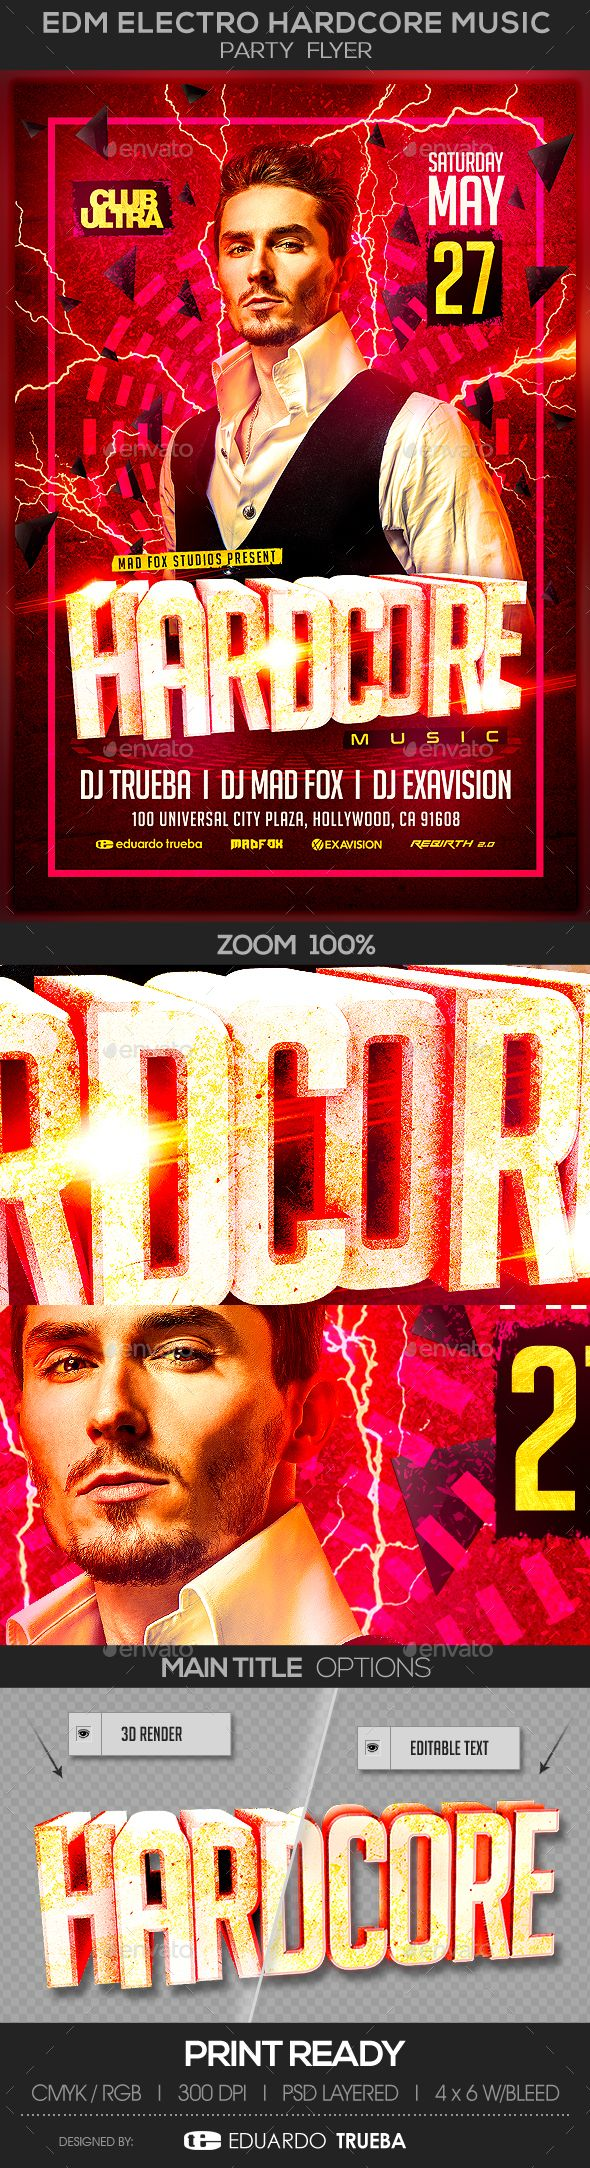 EDM Electro Hardcore #Music Party #Flyer - Clubs & Parties #Events Download here:  https://graphicriver.net/item/edm-electro-hardcore-music-party-flyer/19533874?ref=alena994